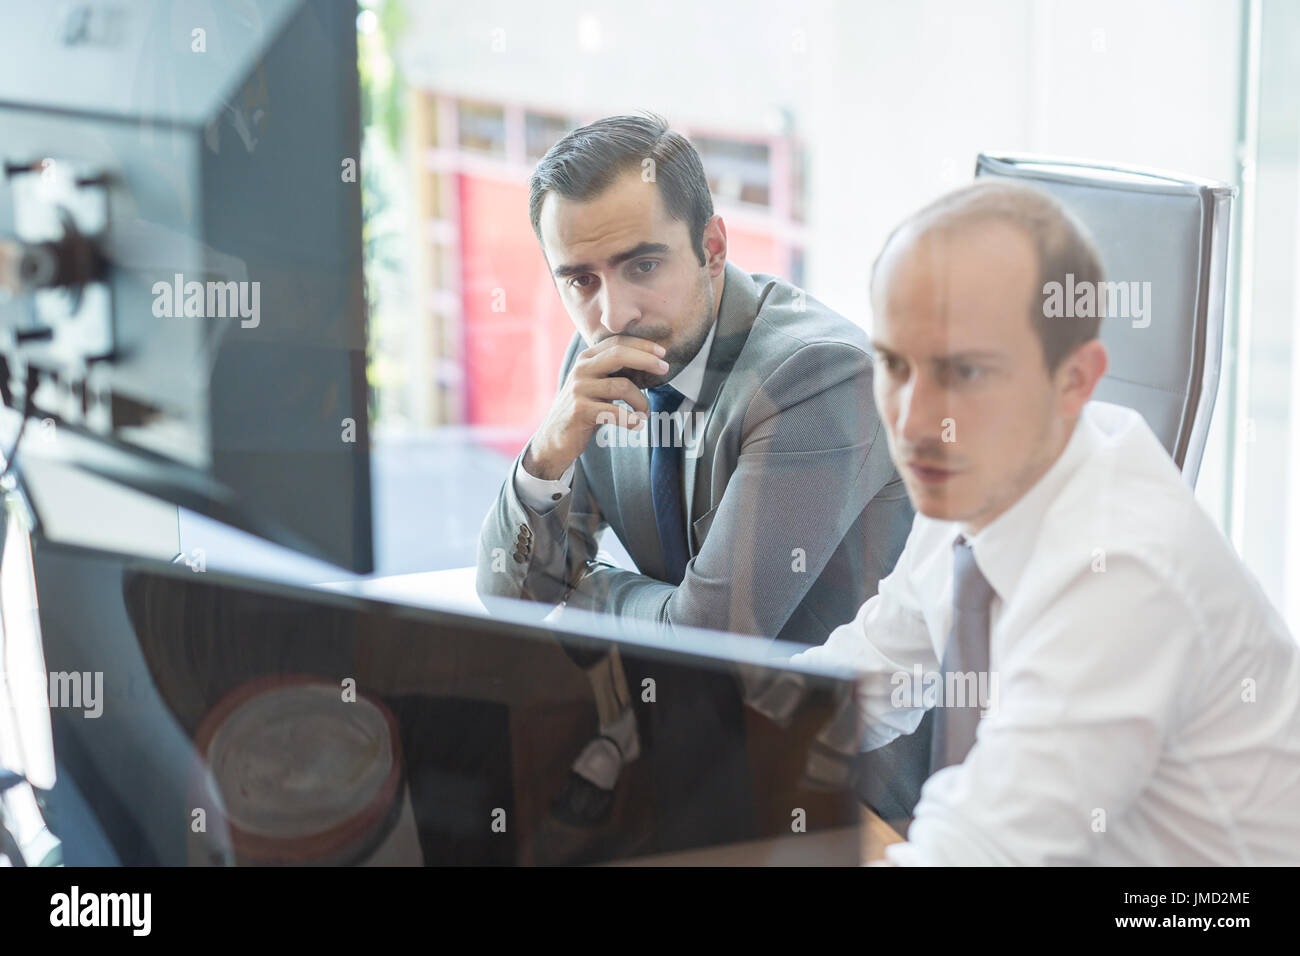 Business team analyzing data at business meeting. - Stock Image